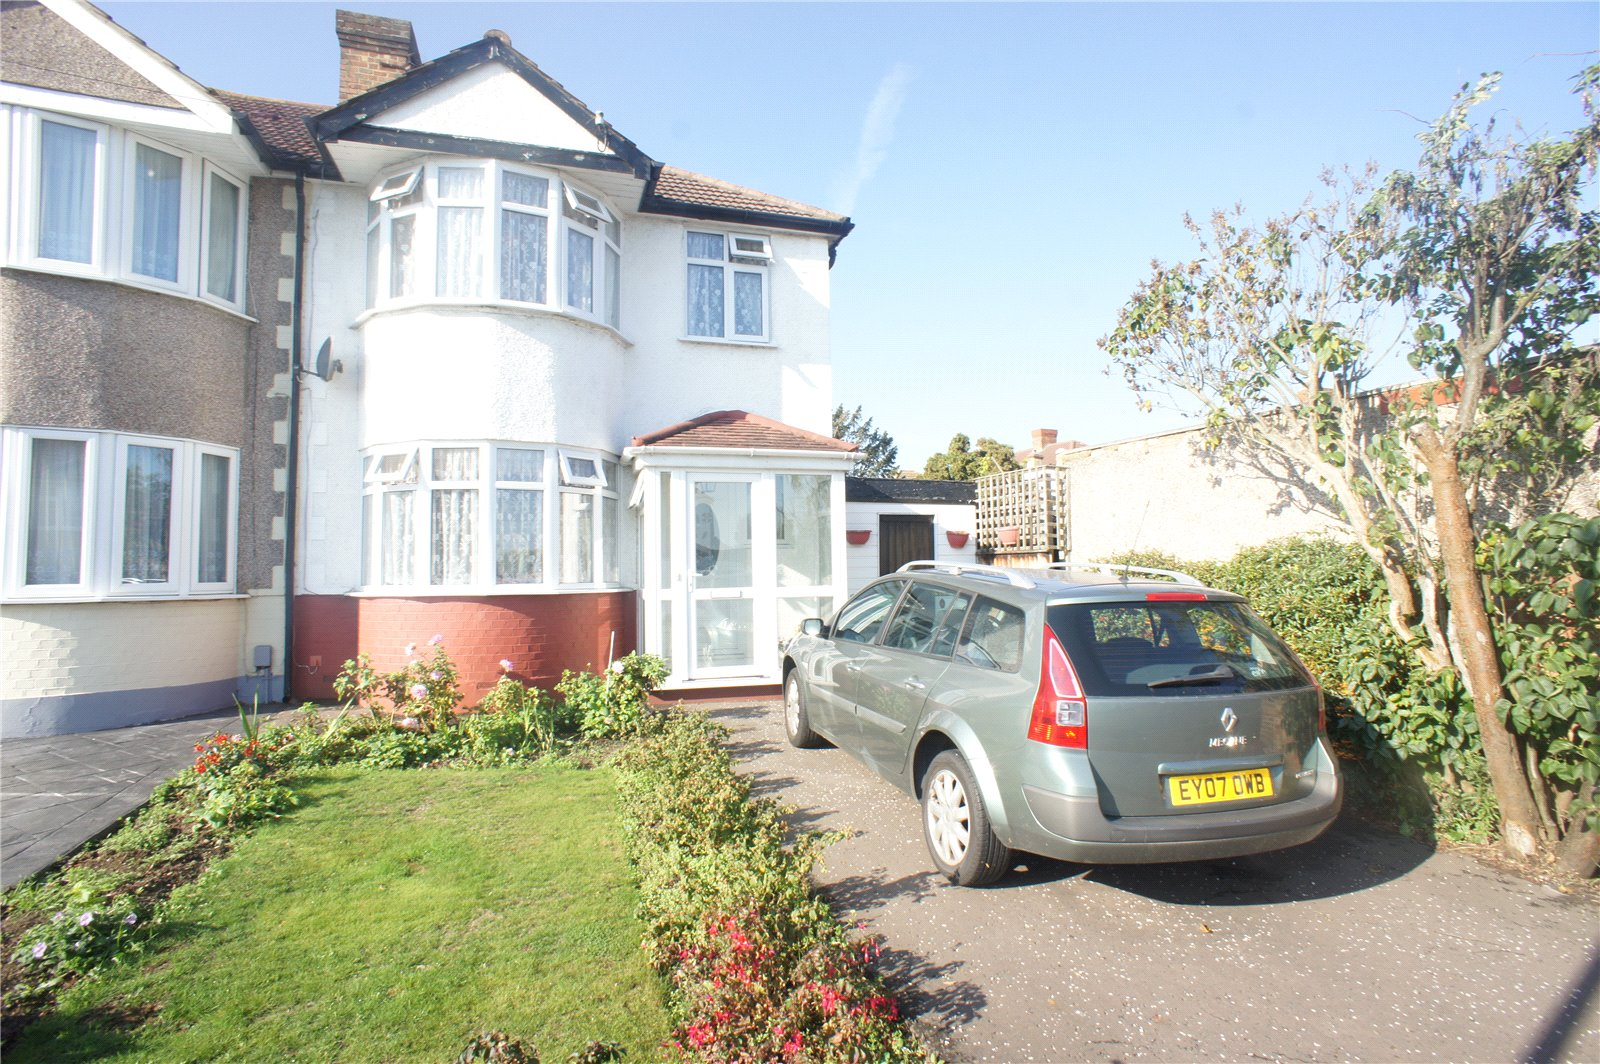 Plaxtol Road, Erith, DA8